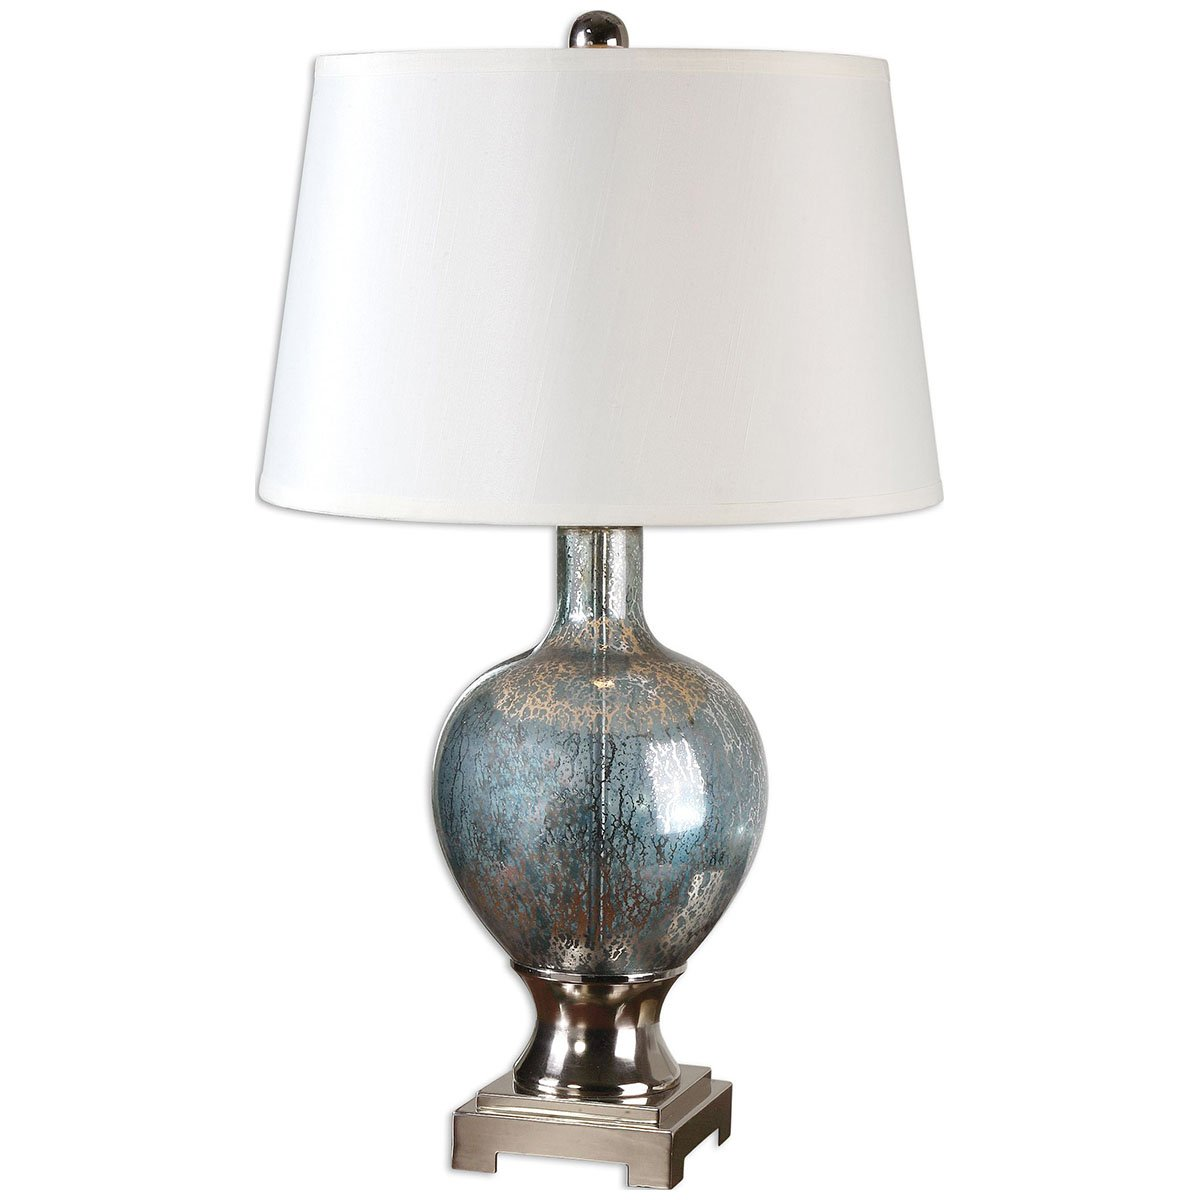 stewart martha mercury your for lamp tag large idea inspirations lighting at glass lamps archives